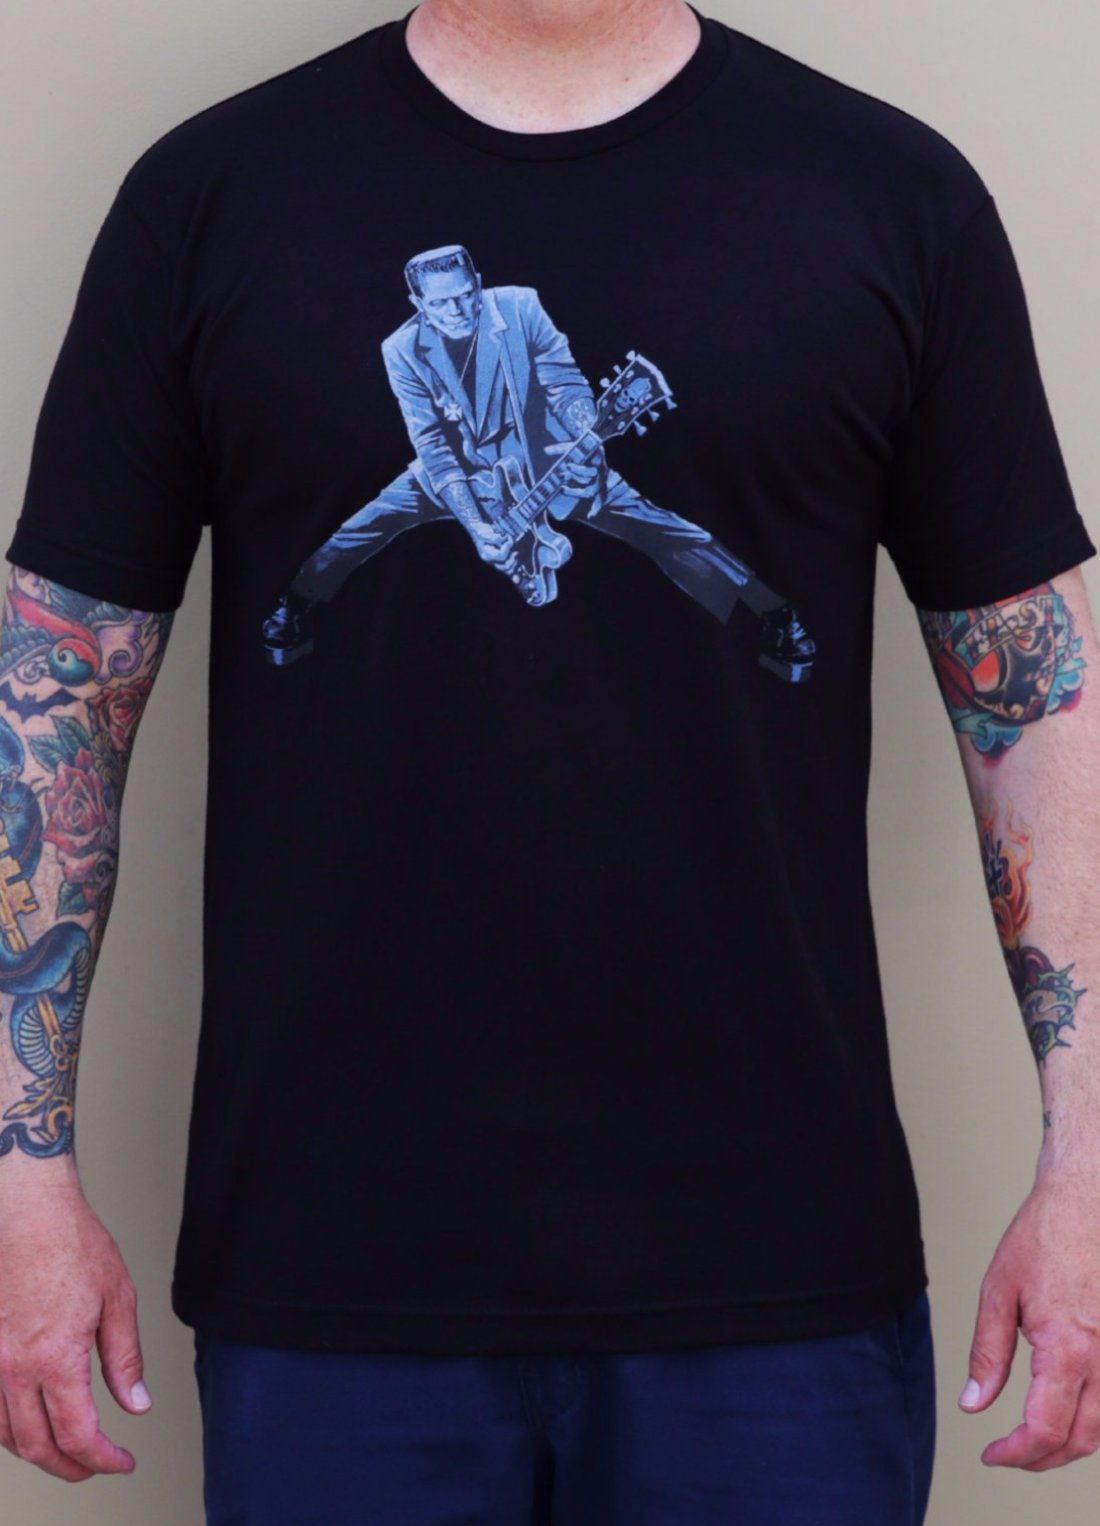 The ROCK N ROLL MONSTER Tee